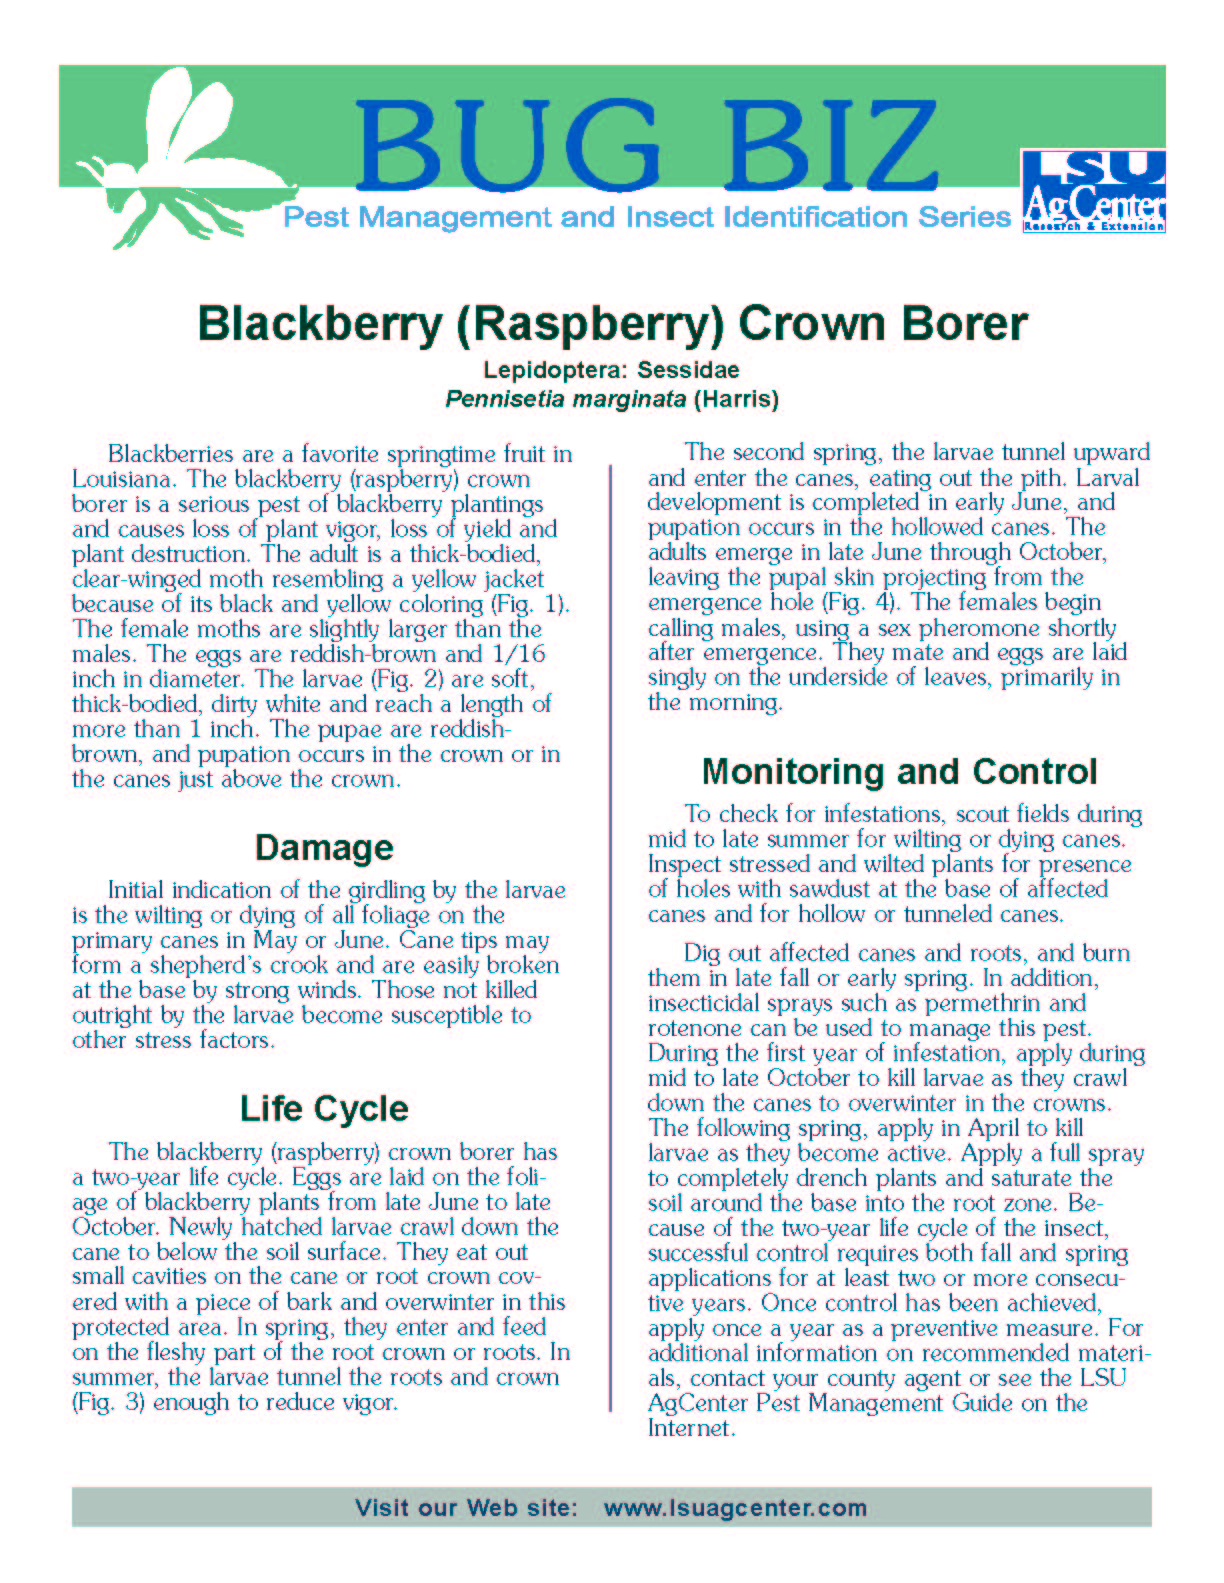 Bug Biz:  Blackberry (Raspberry) Crown Borer